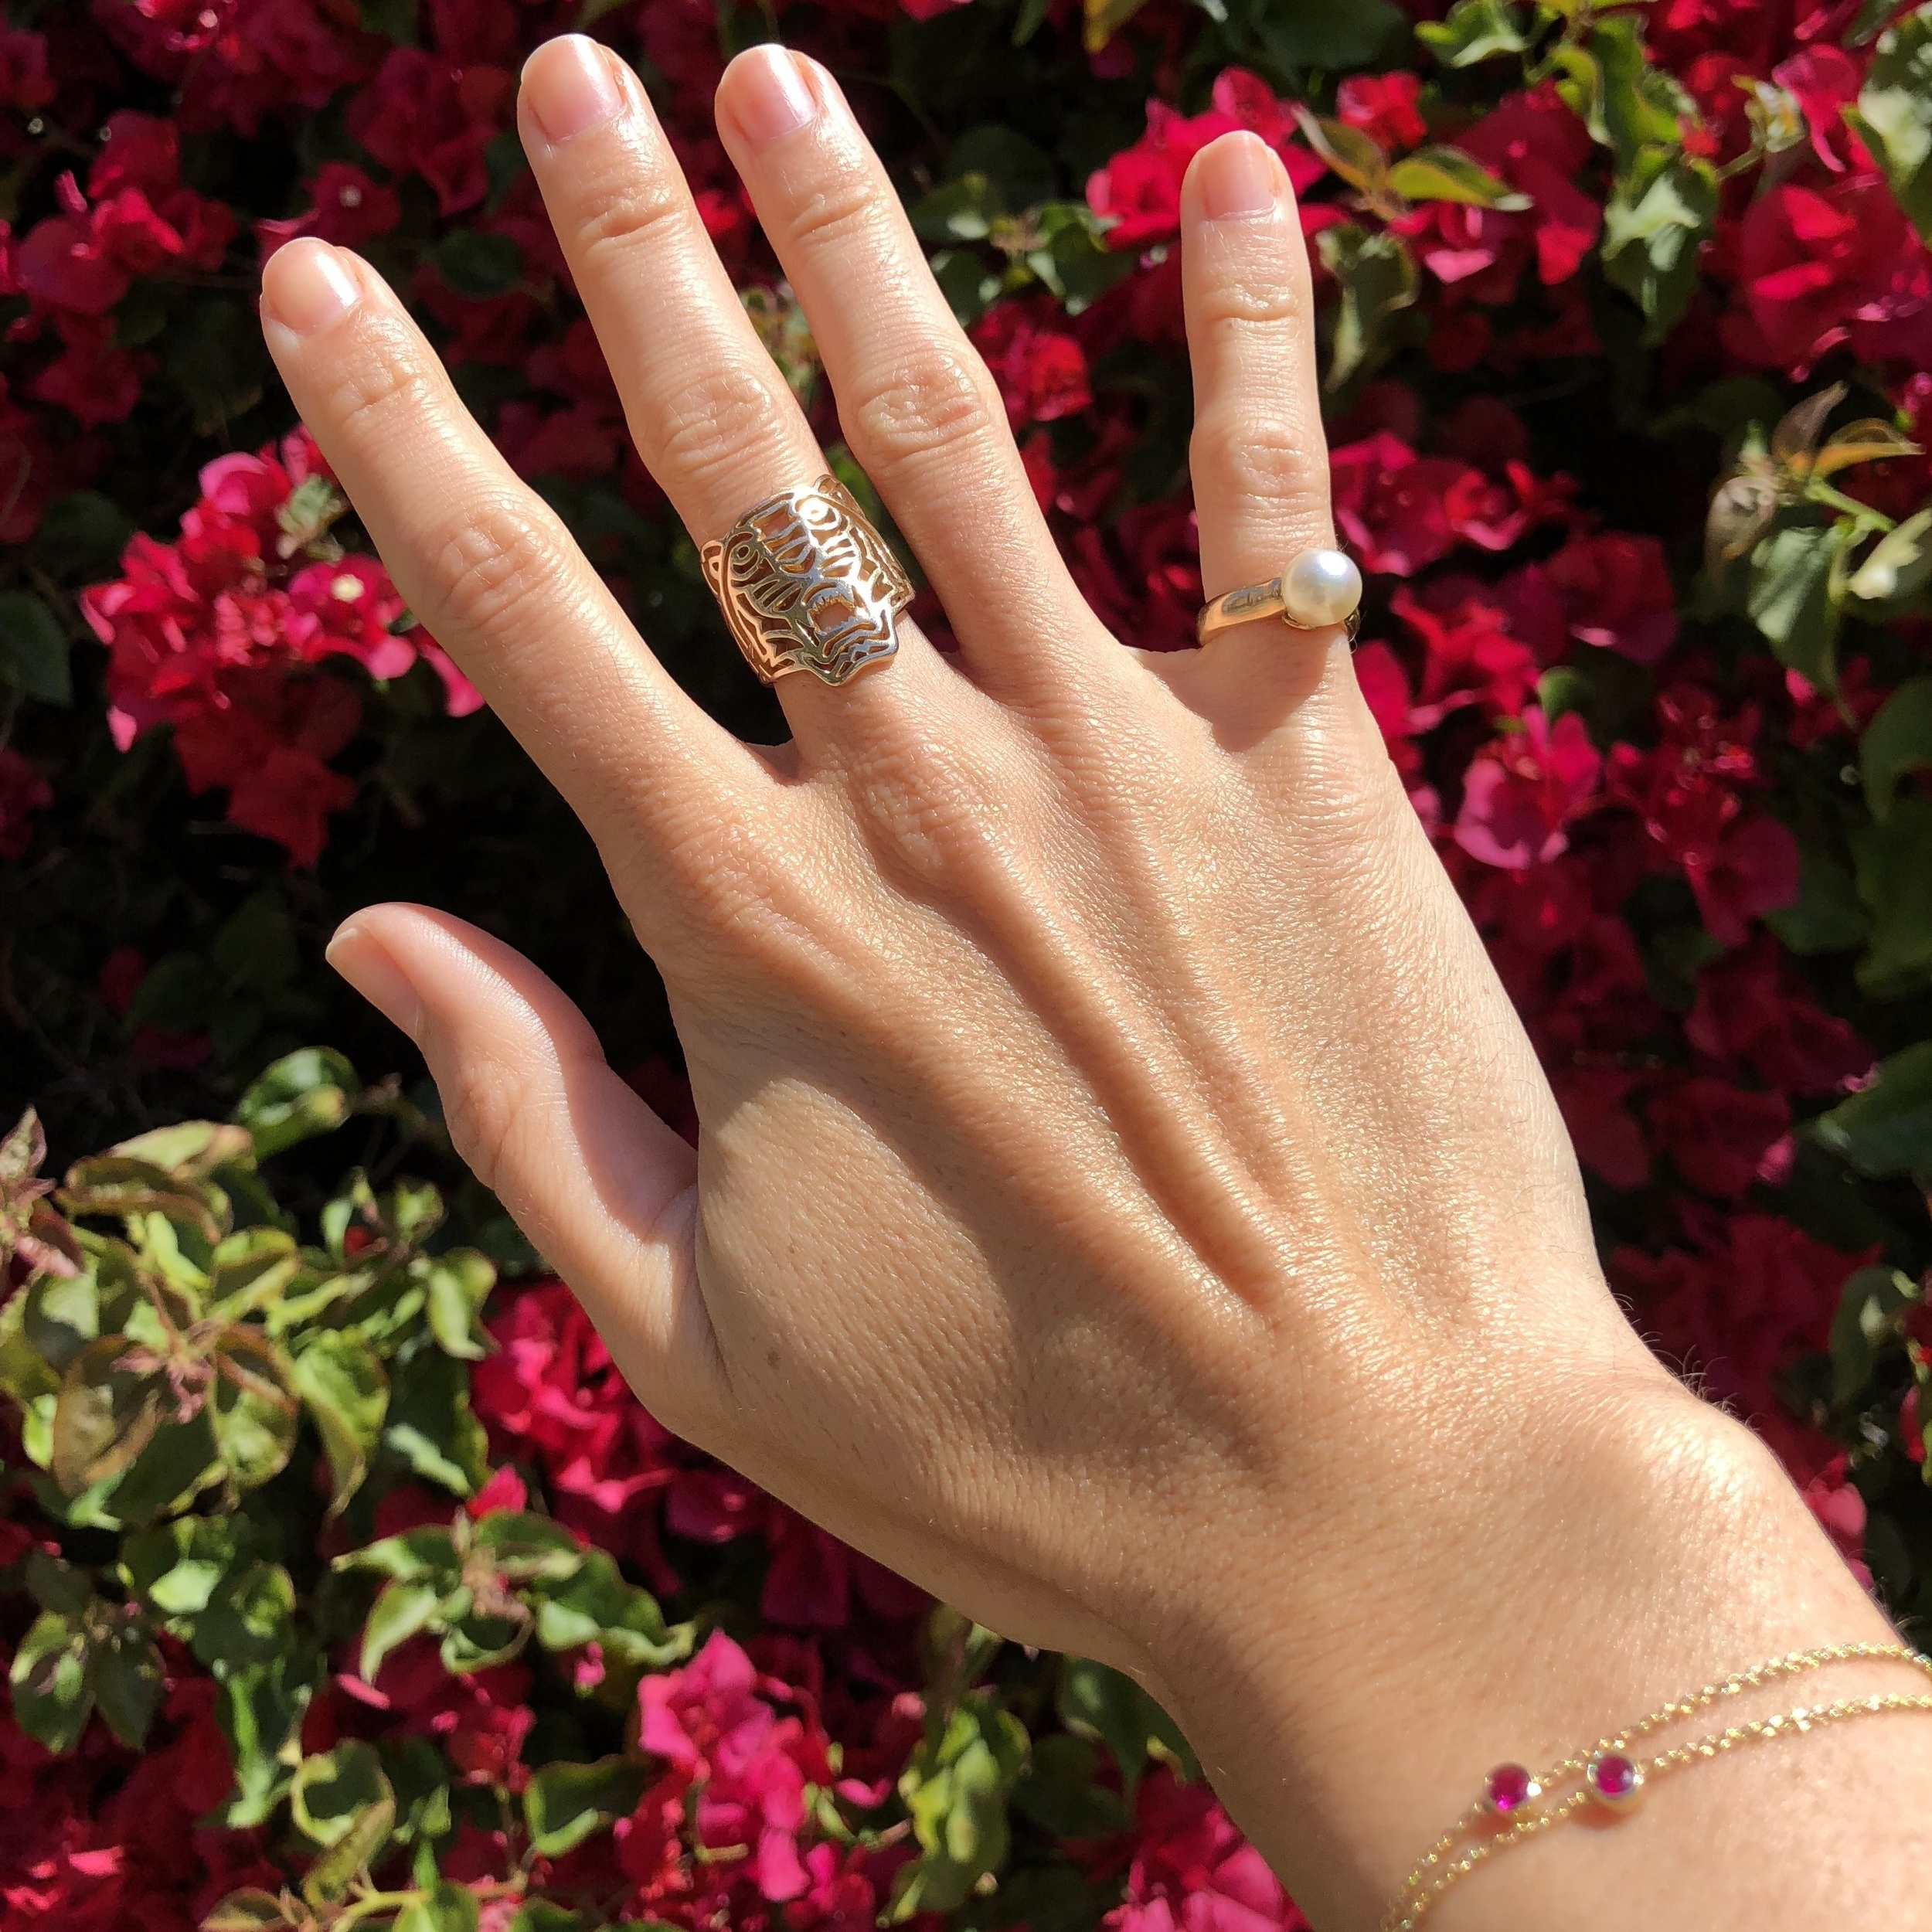 Tiger Ring: Jewelry that makes Mirta feel strong